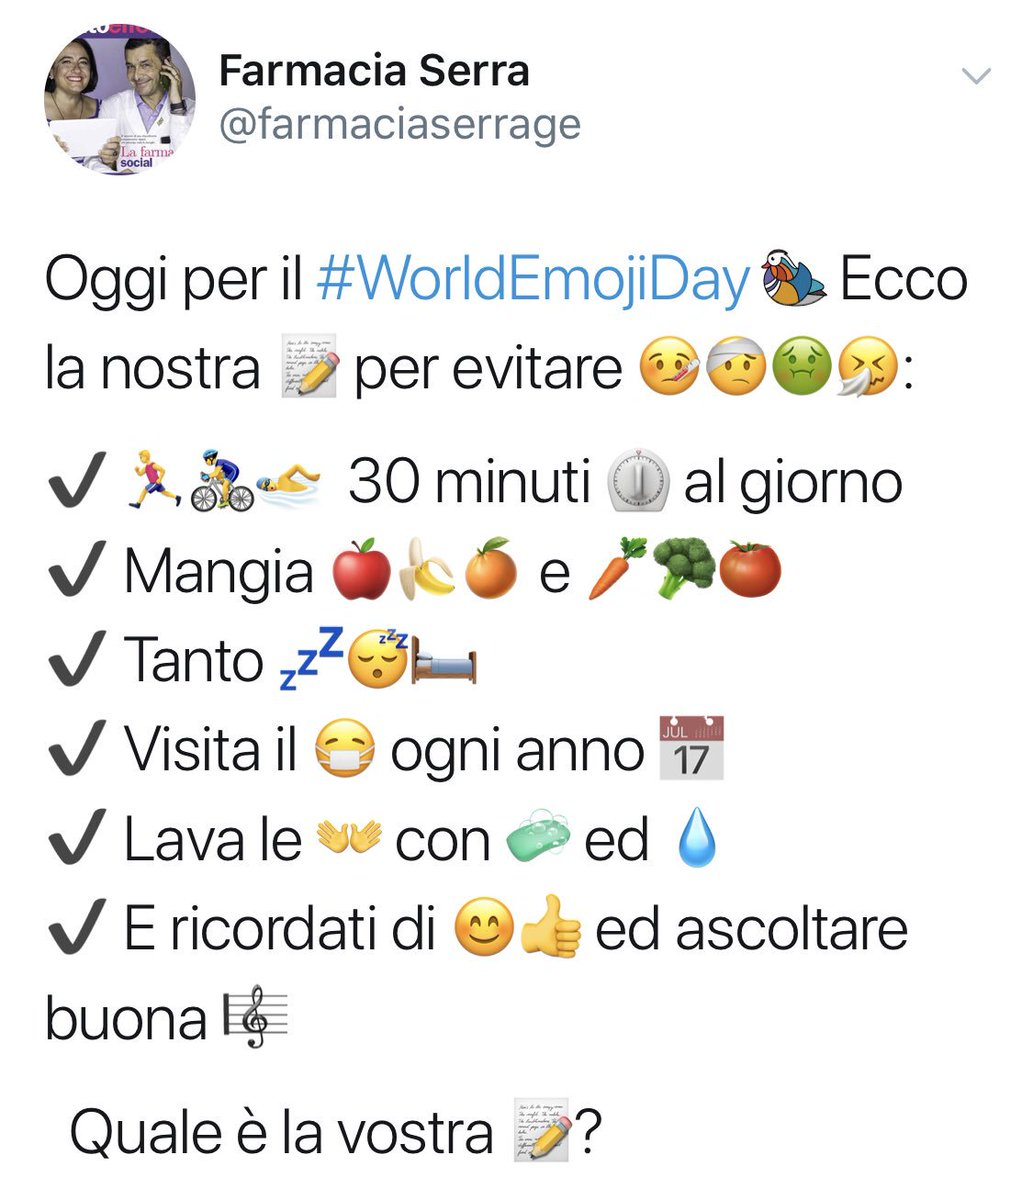 #WorldEmojiDay